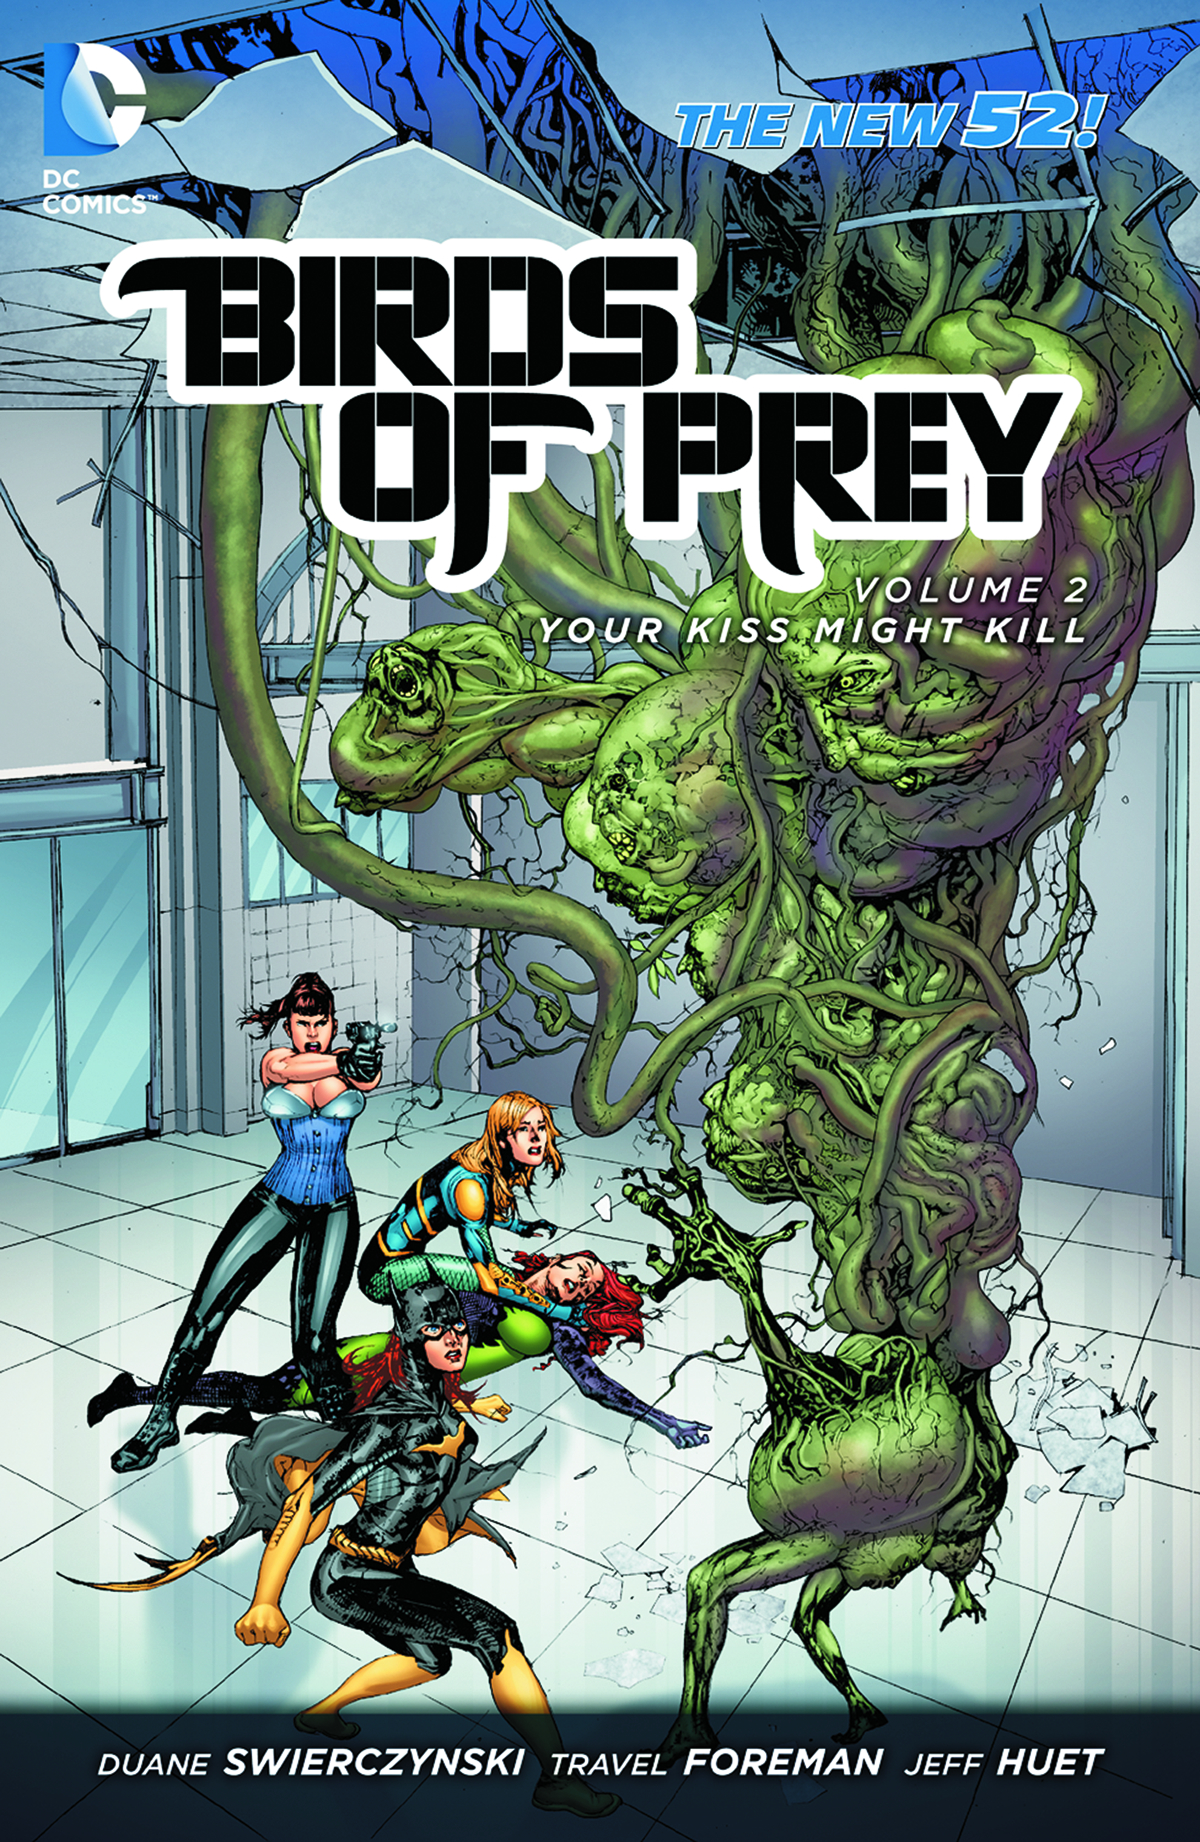 BIRDS OF PREY TP VOL 02 YOUR KISS MIGHT KILL